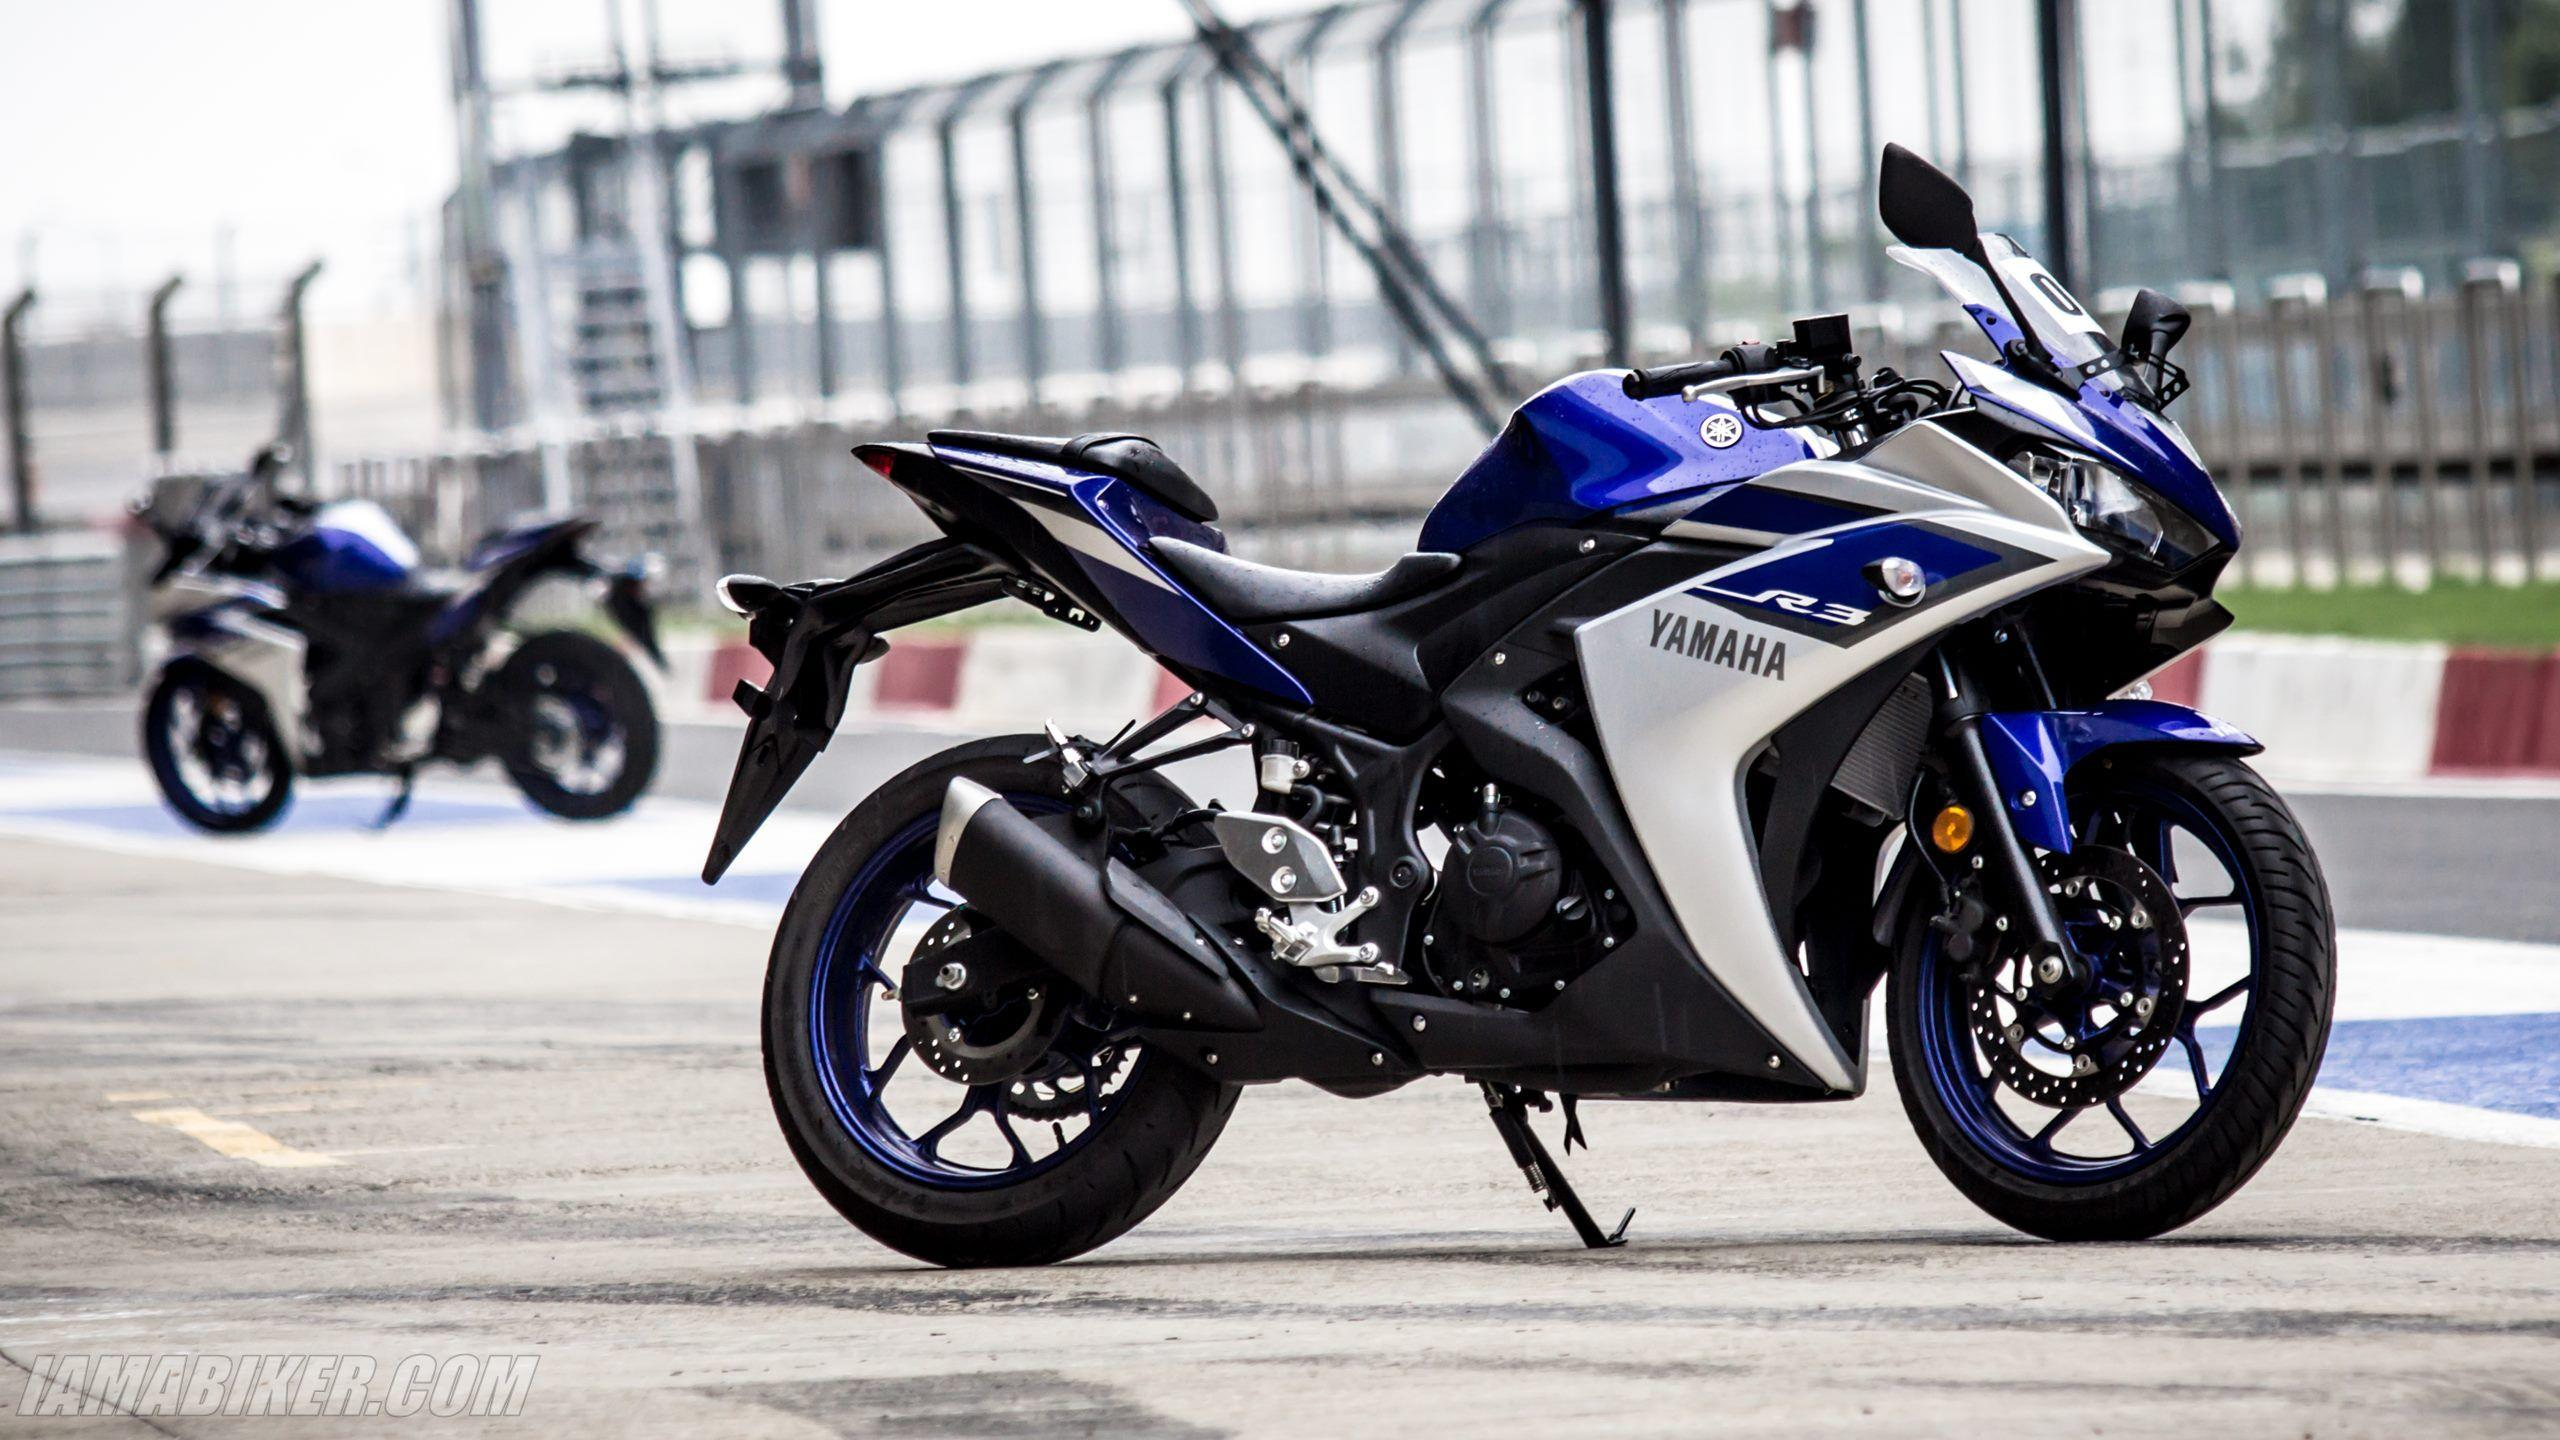 Yamaha yzf r3 wallpapers wallpaper cave for Yamaha yzf r3 price